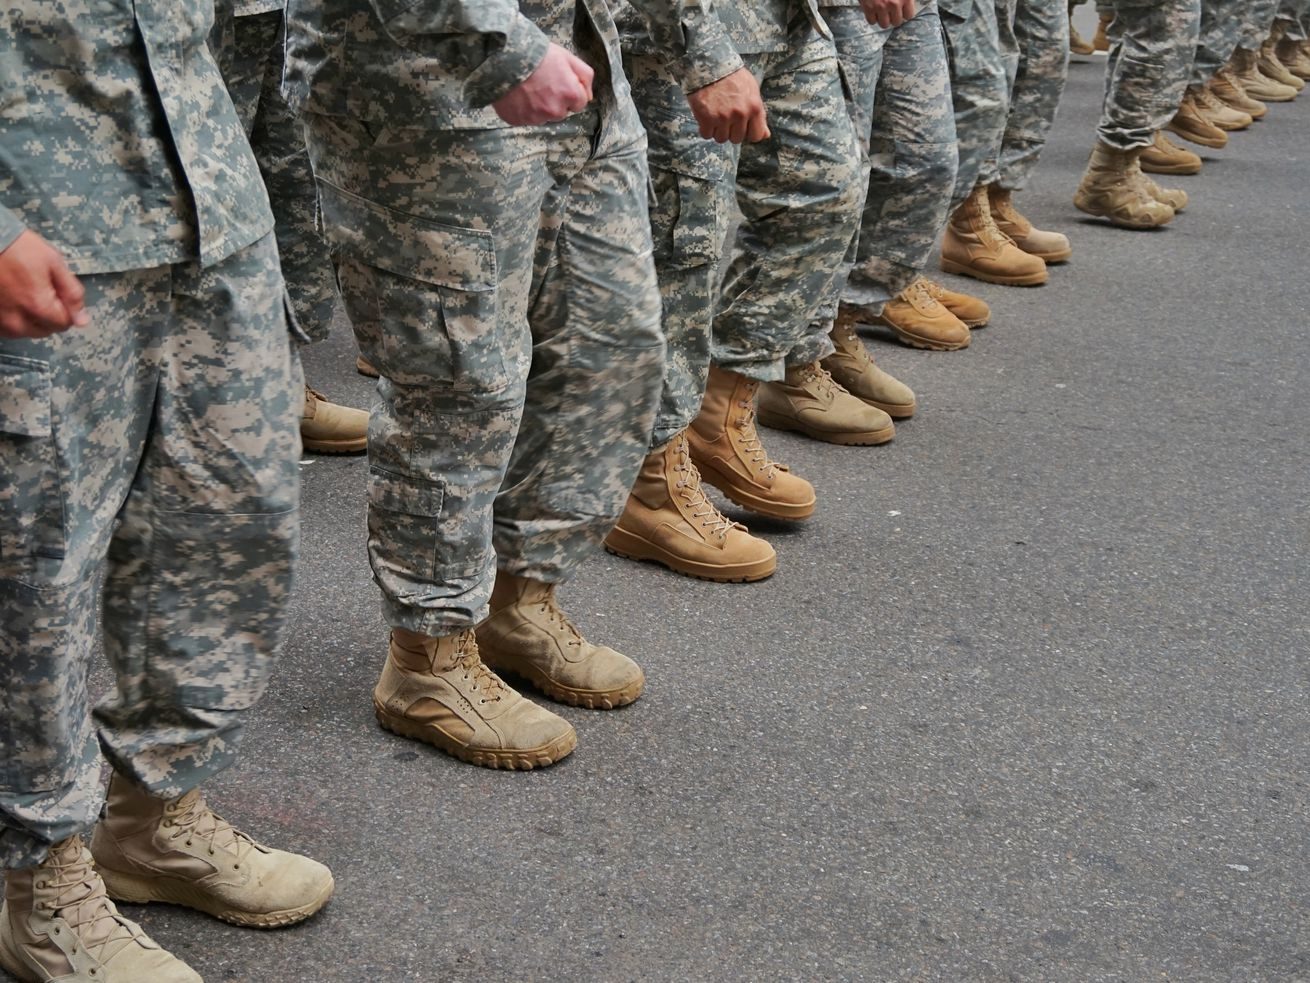 People in military uniform stand in line.